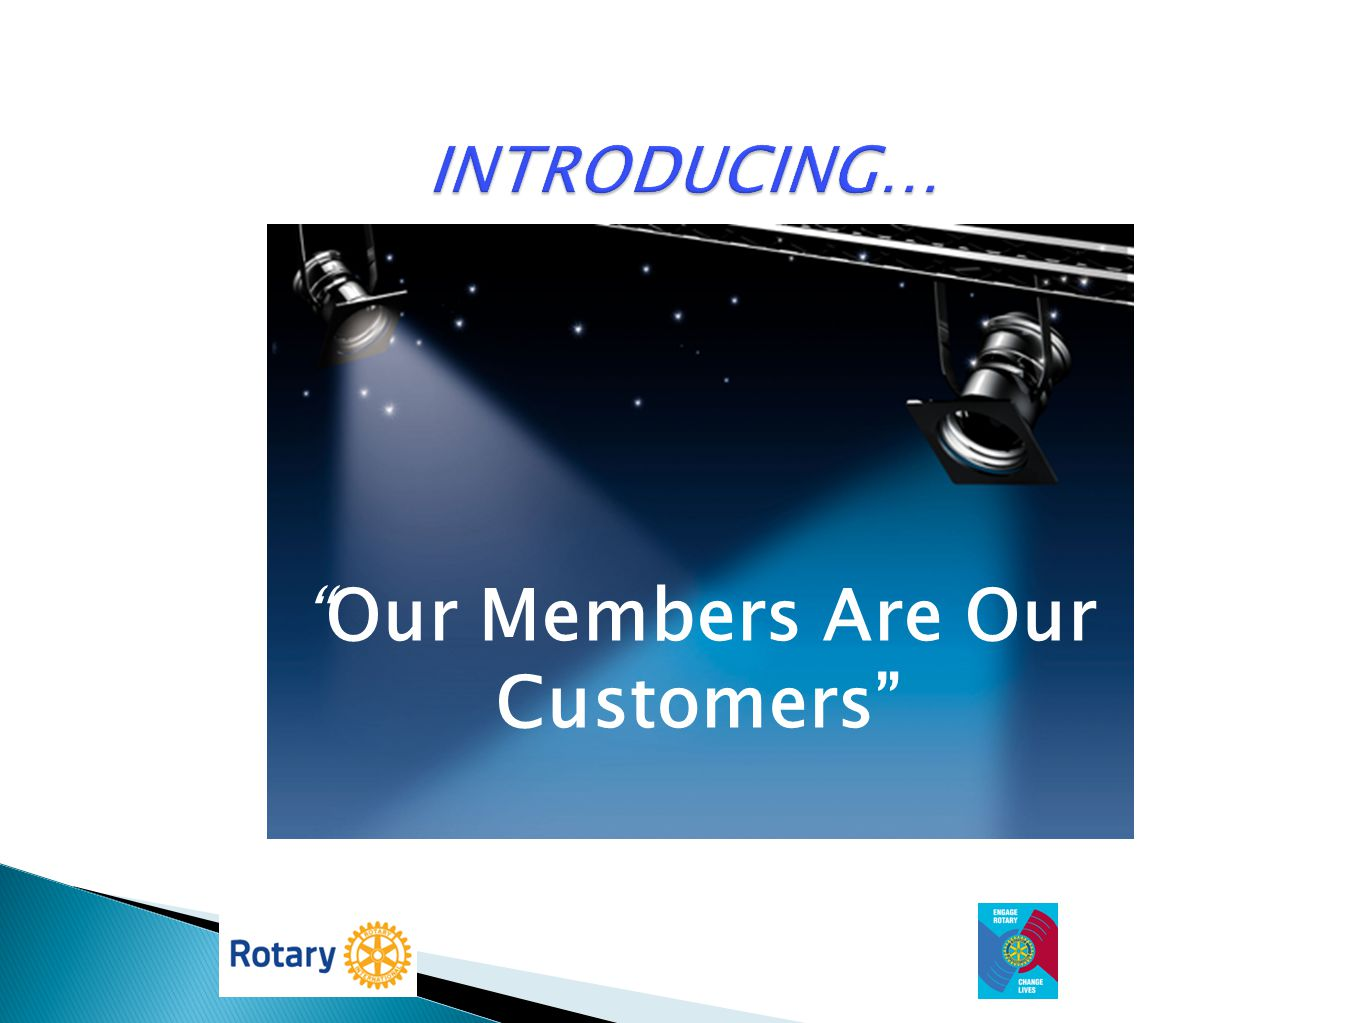 Our Members Are Our Customers